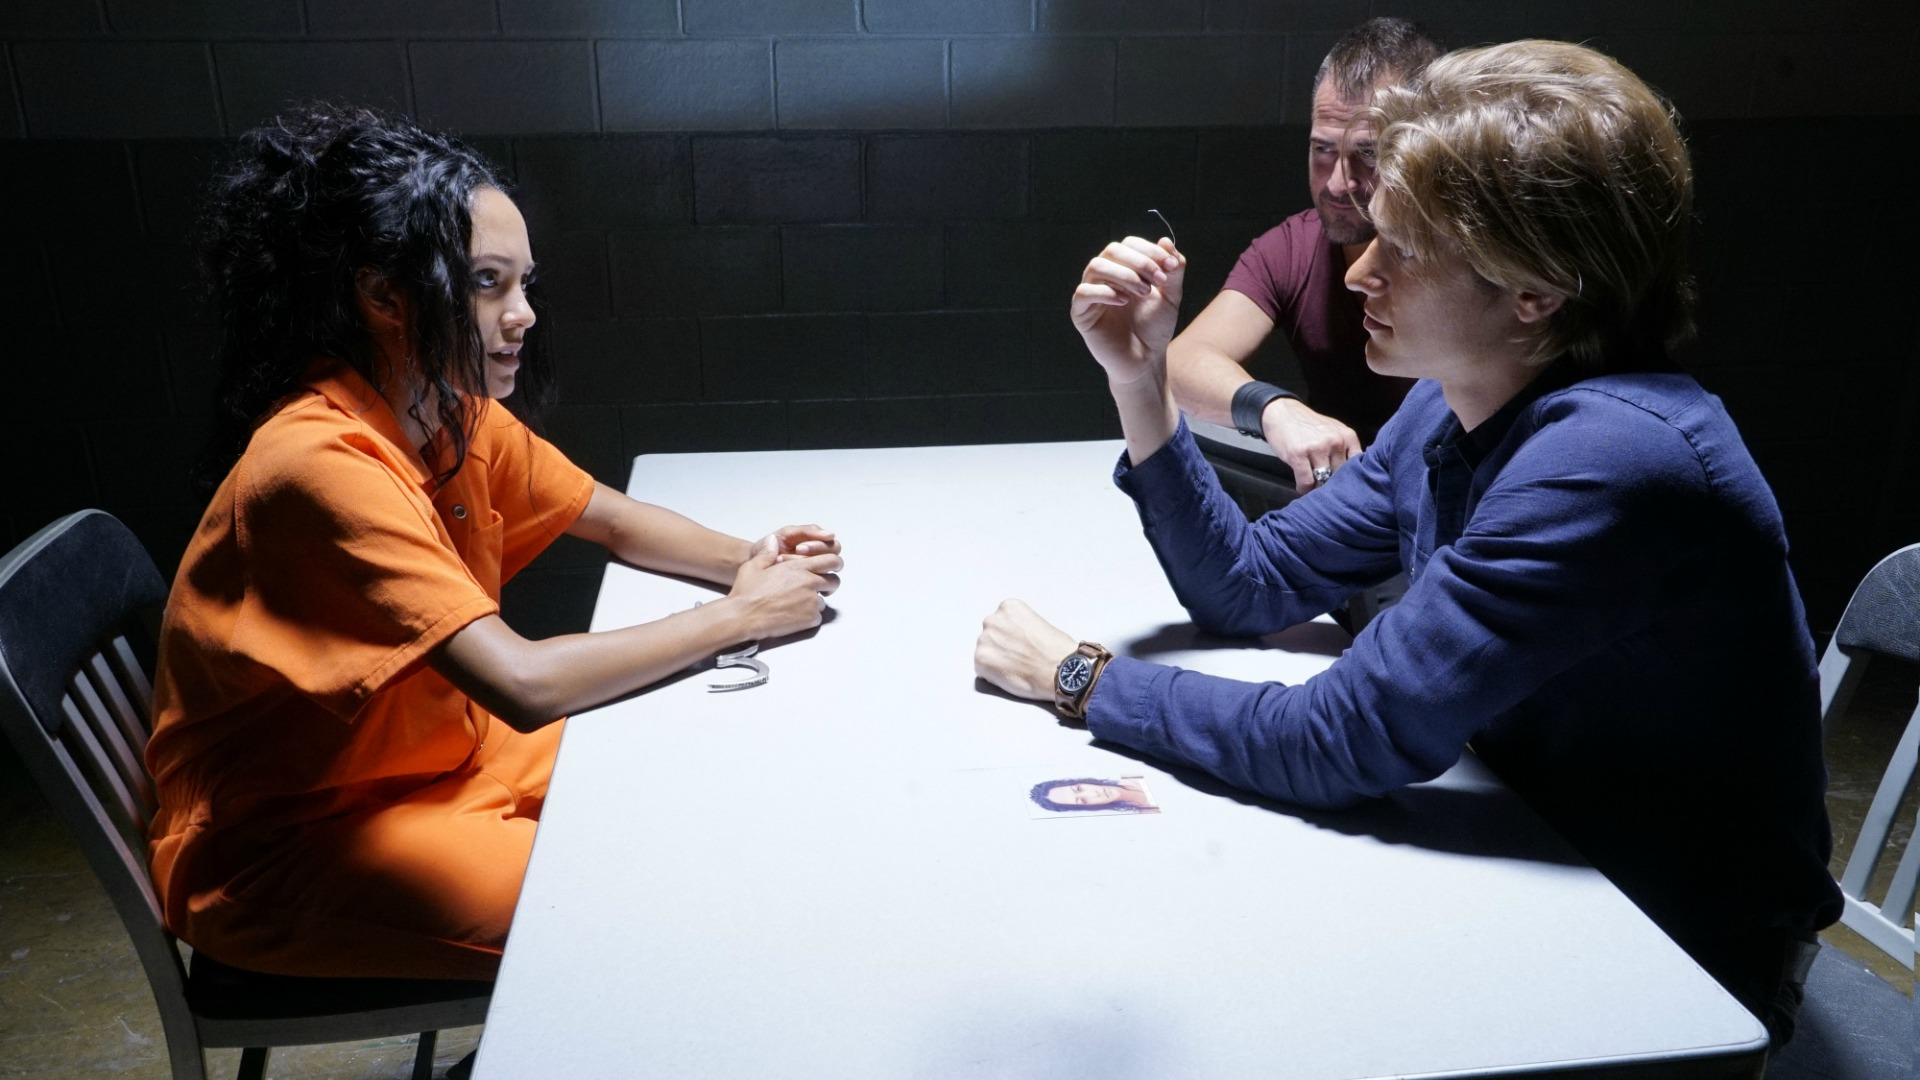 MacGyver meets Riley in prison.